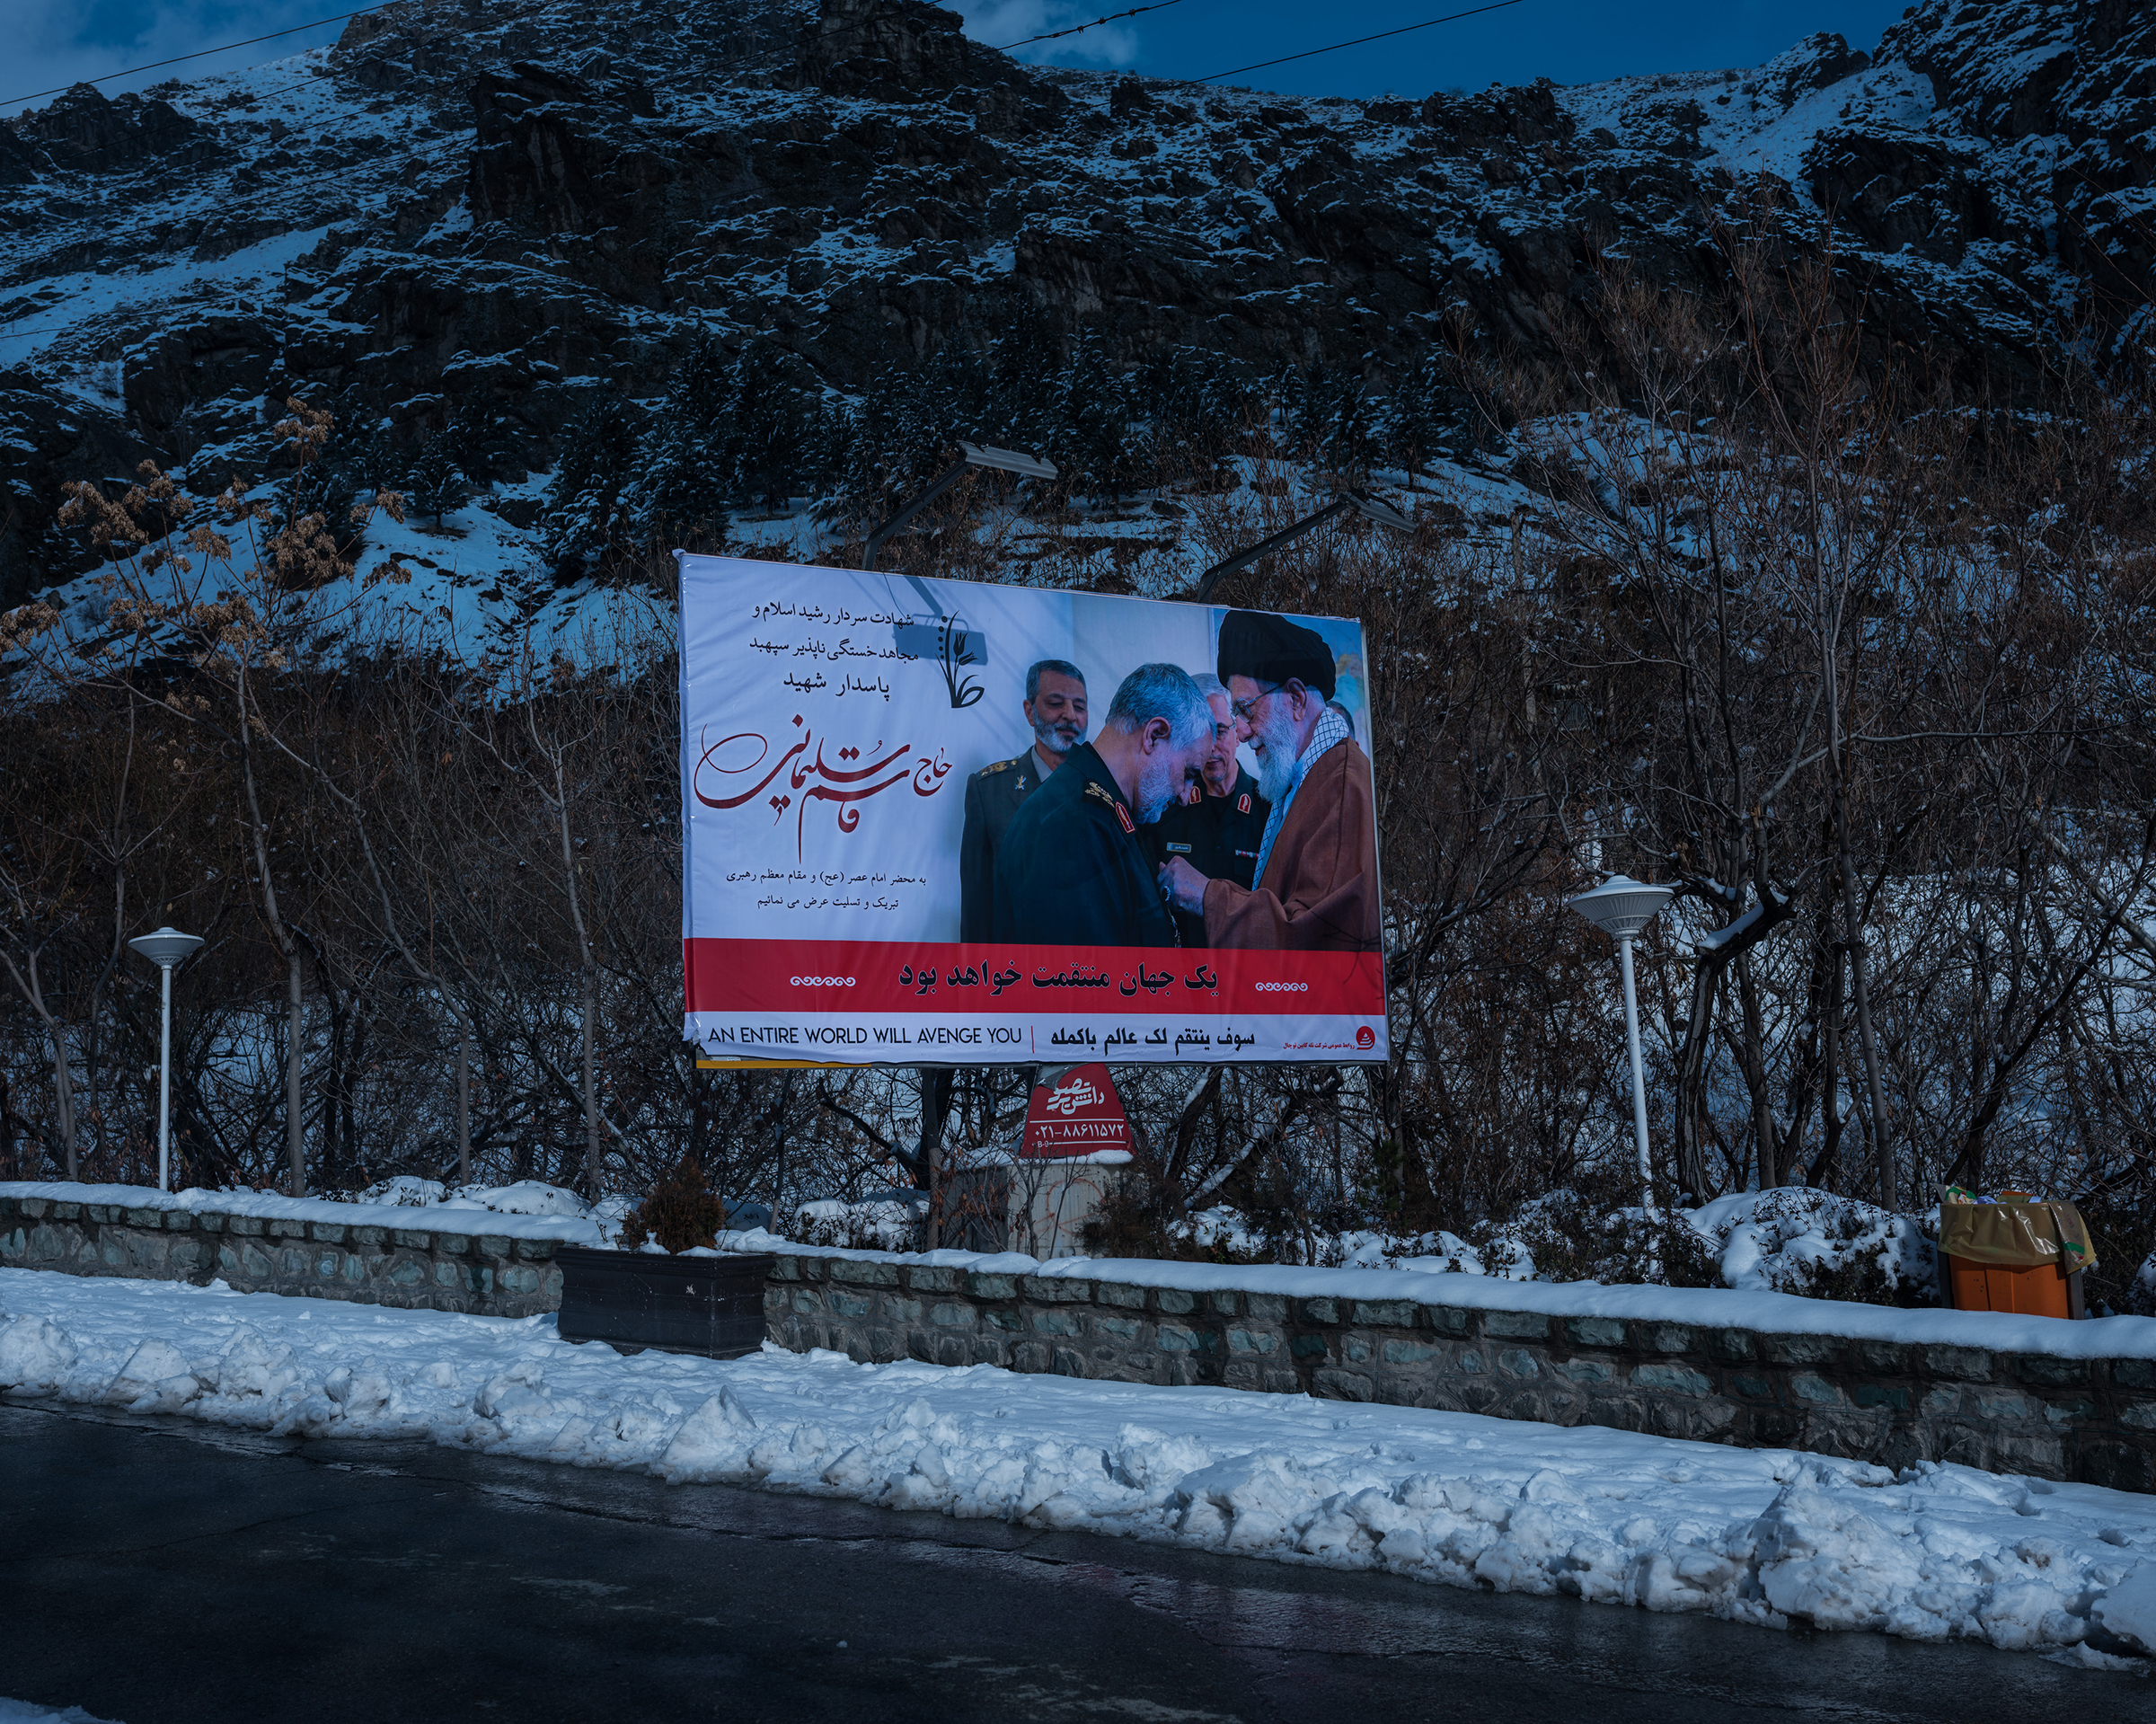 A poster showing Soleimani and the Supreme Leader, Ayatollah Ali Khamenei, in the snowy mountains above Iran's capital.